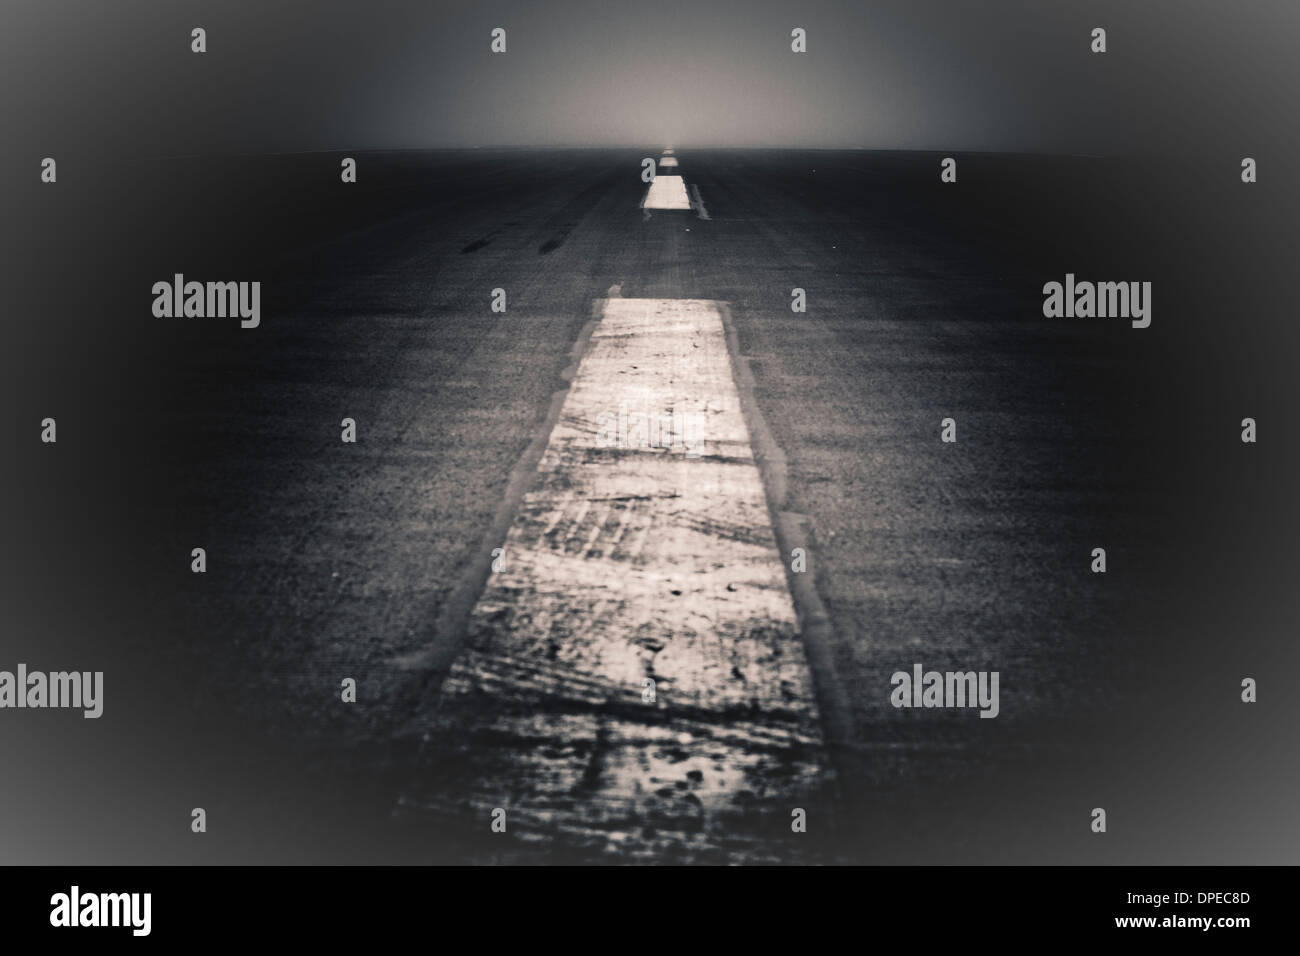 Abstract creative photo of dramatic dark road and sky. - Stock Image